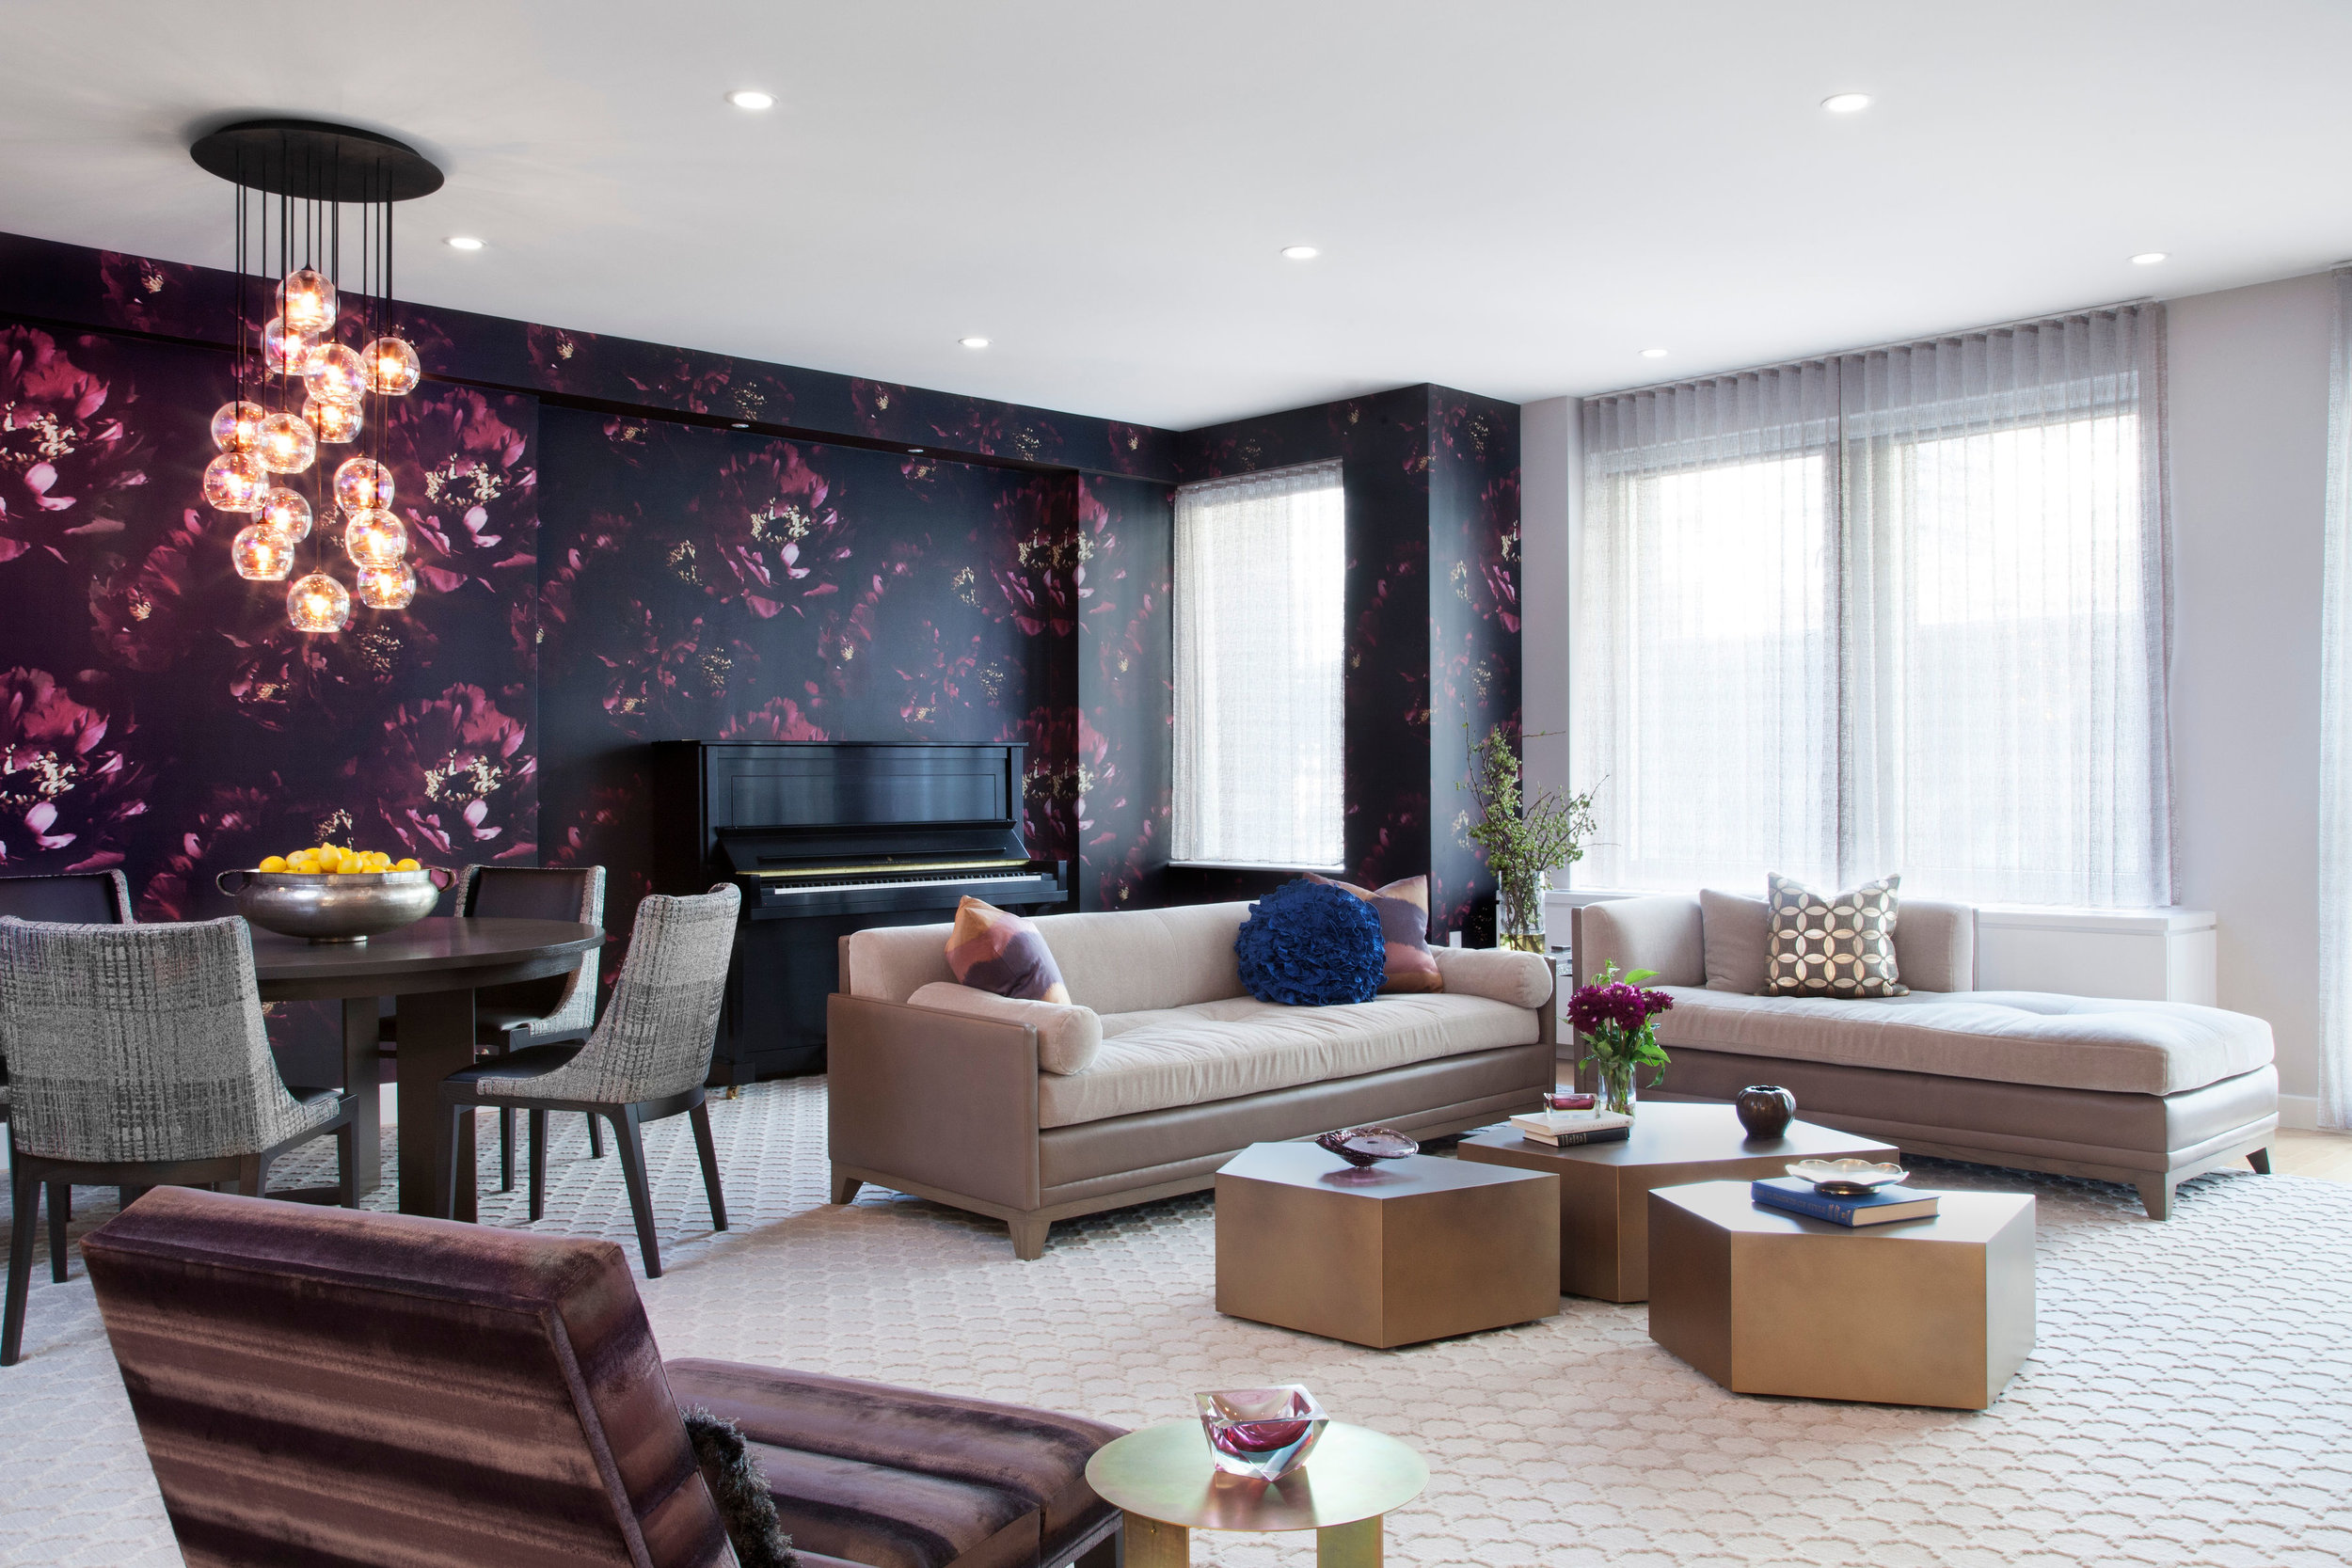 Everything in this living/dining area was designed with the clients in mind. From the bold floral wallpaper (which inspired the entire space) to soft mohair seating and inviting ombre stripes, color & geometric shapes abound.